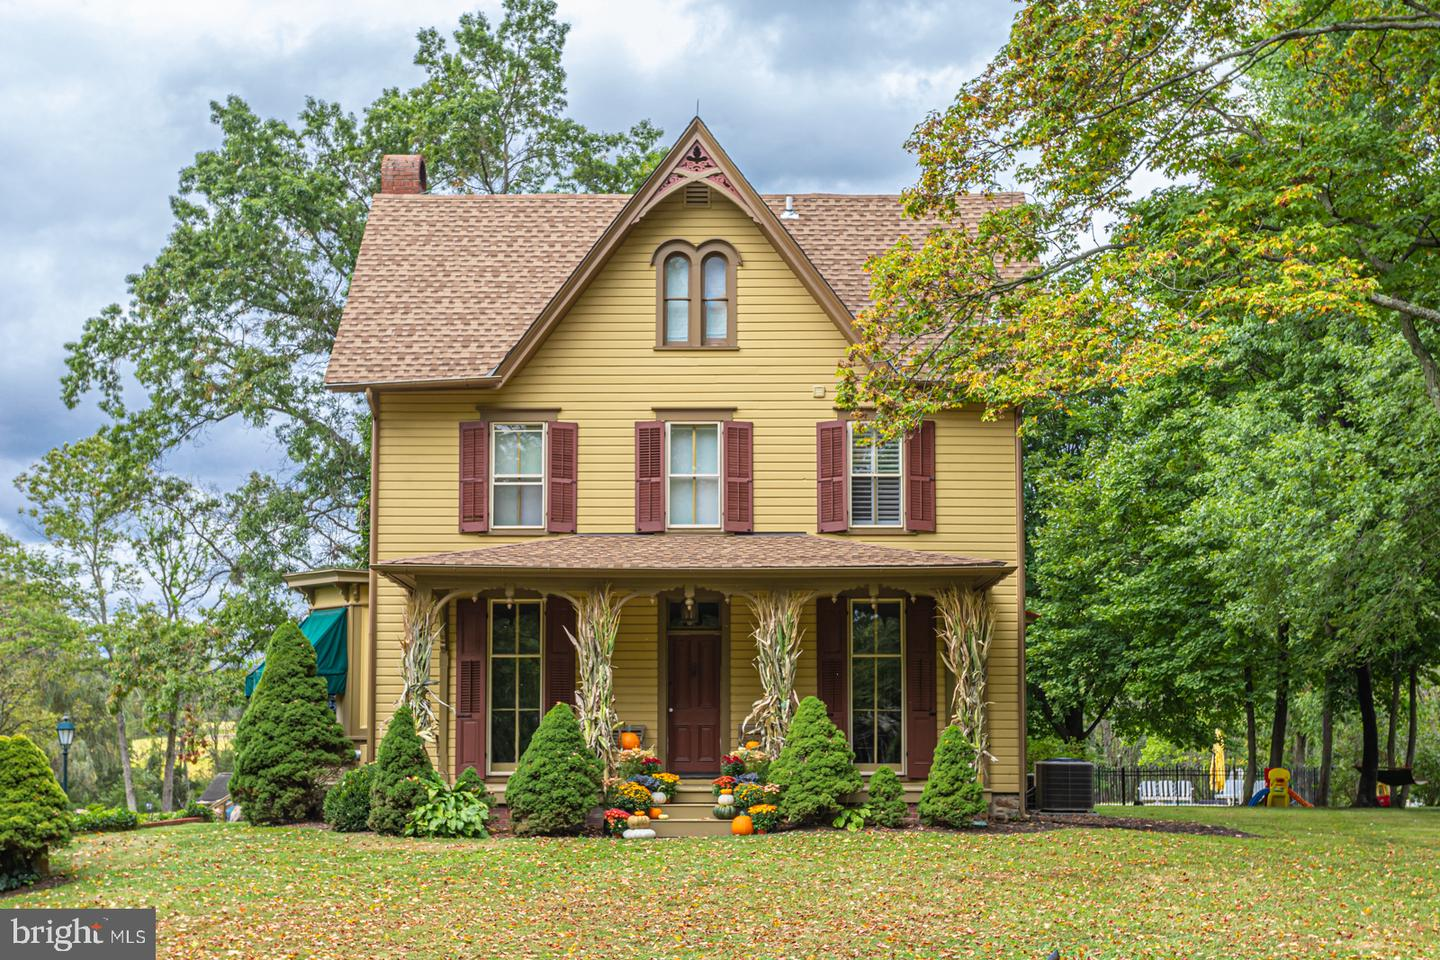 1440 PINEVILLE RD, NEW HOPE, PA